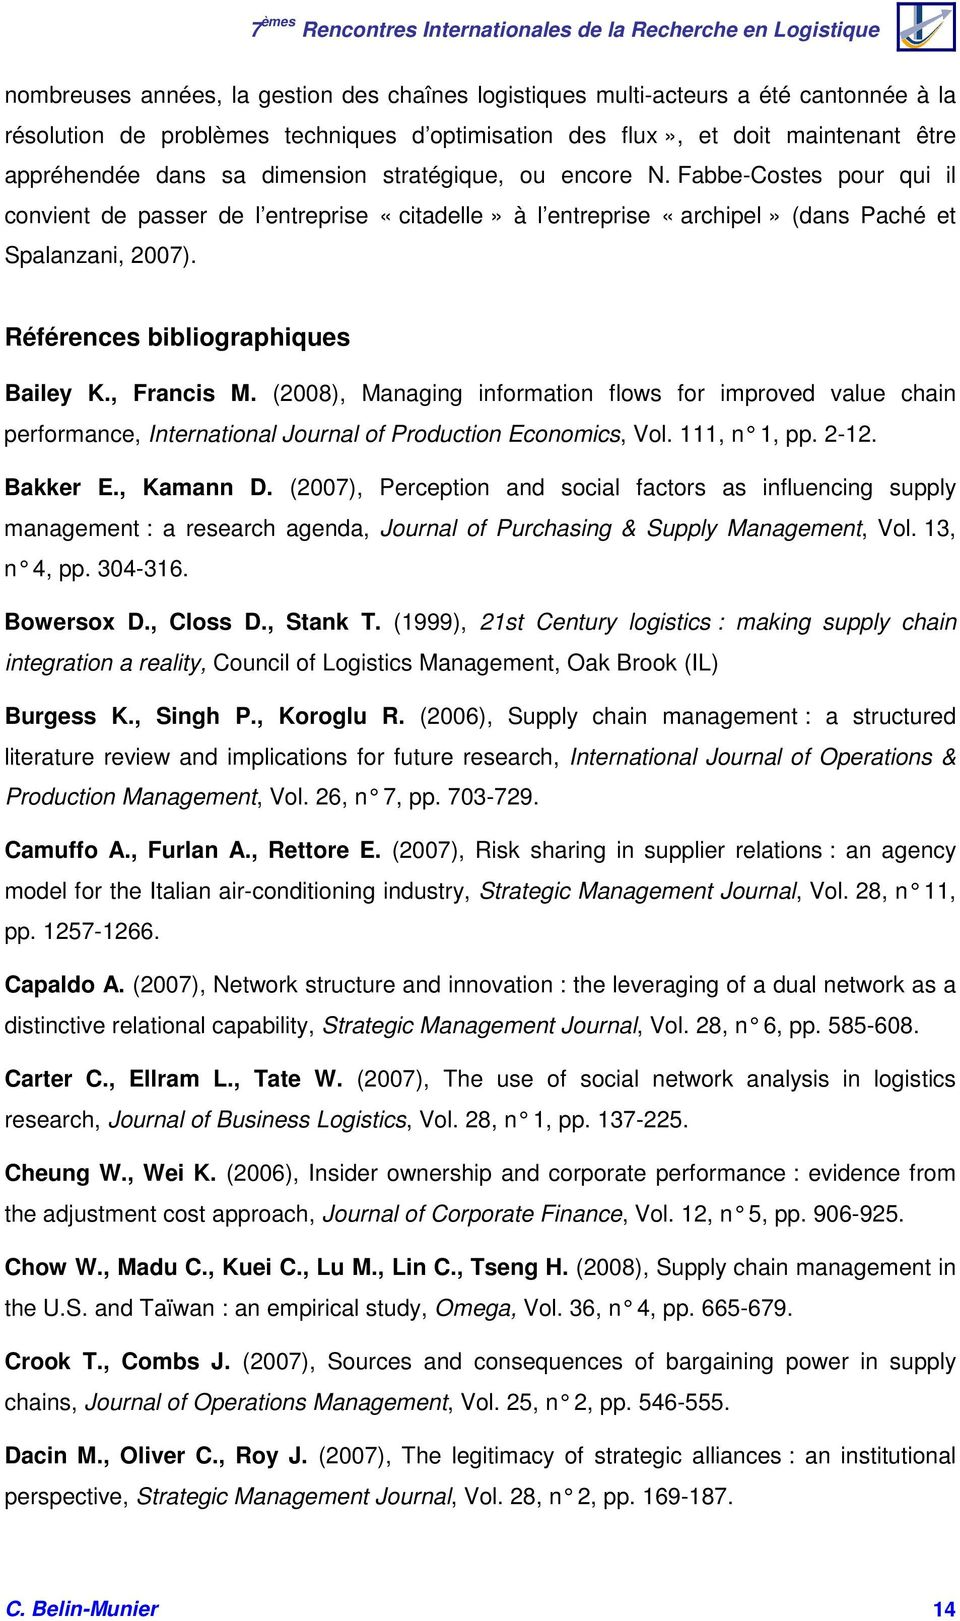 Références bibliographiques Bailey K., Francis M. (2008), Managing information flows for improved value chain performance, International Journal of Production Economics, Vol. 111, n 1, pp. 2-12.